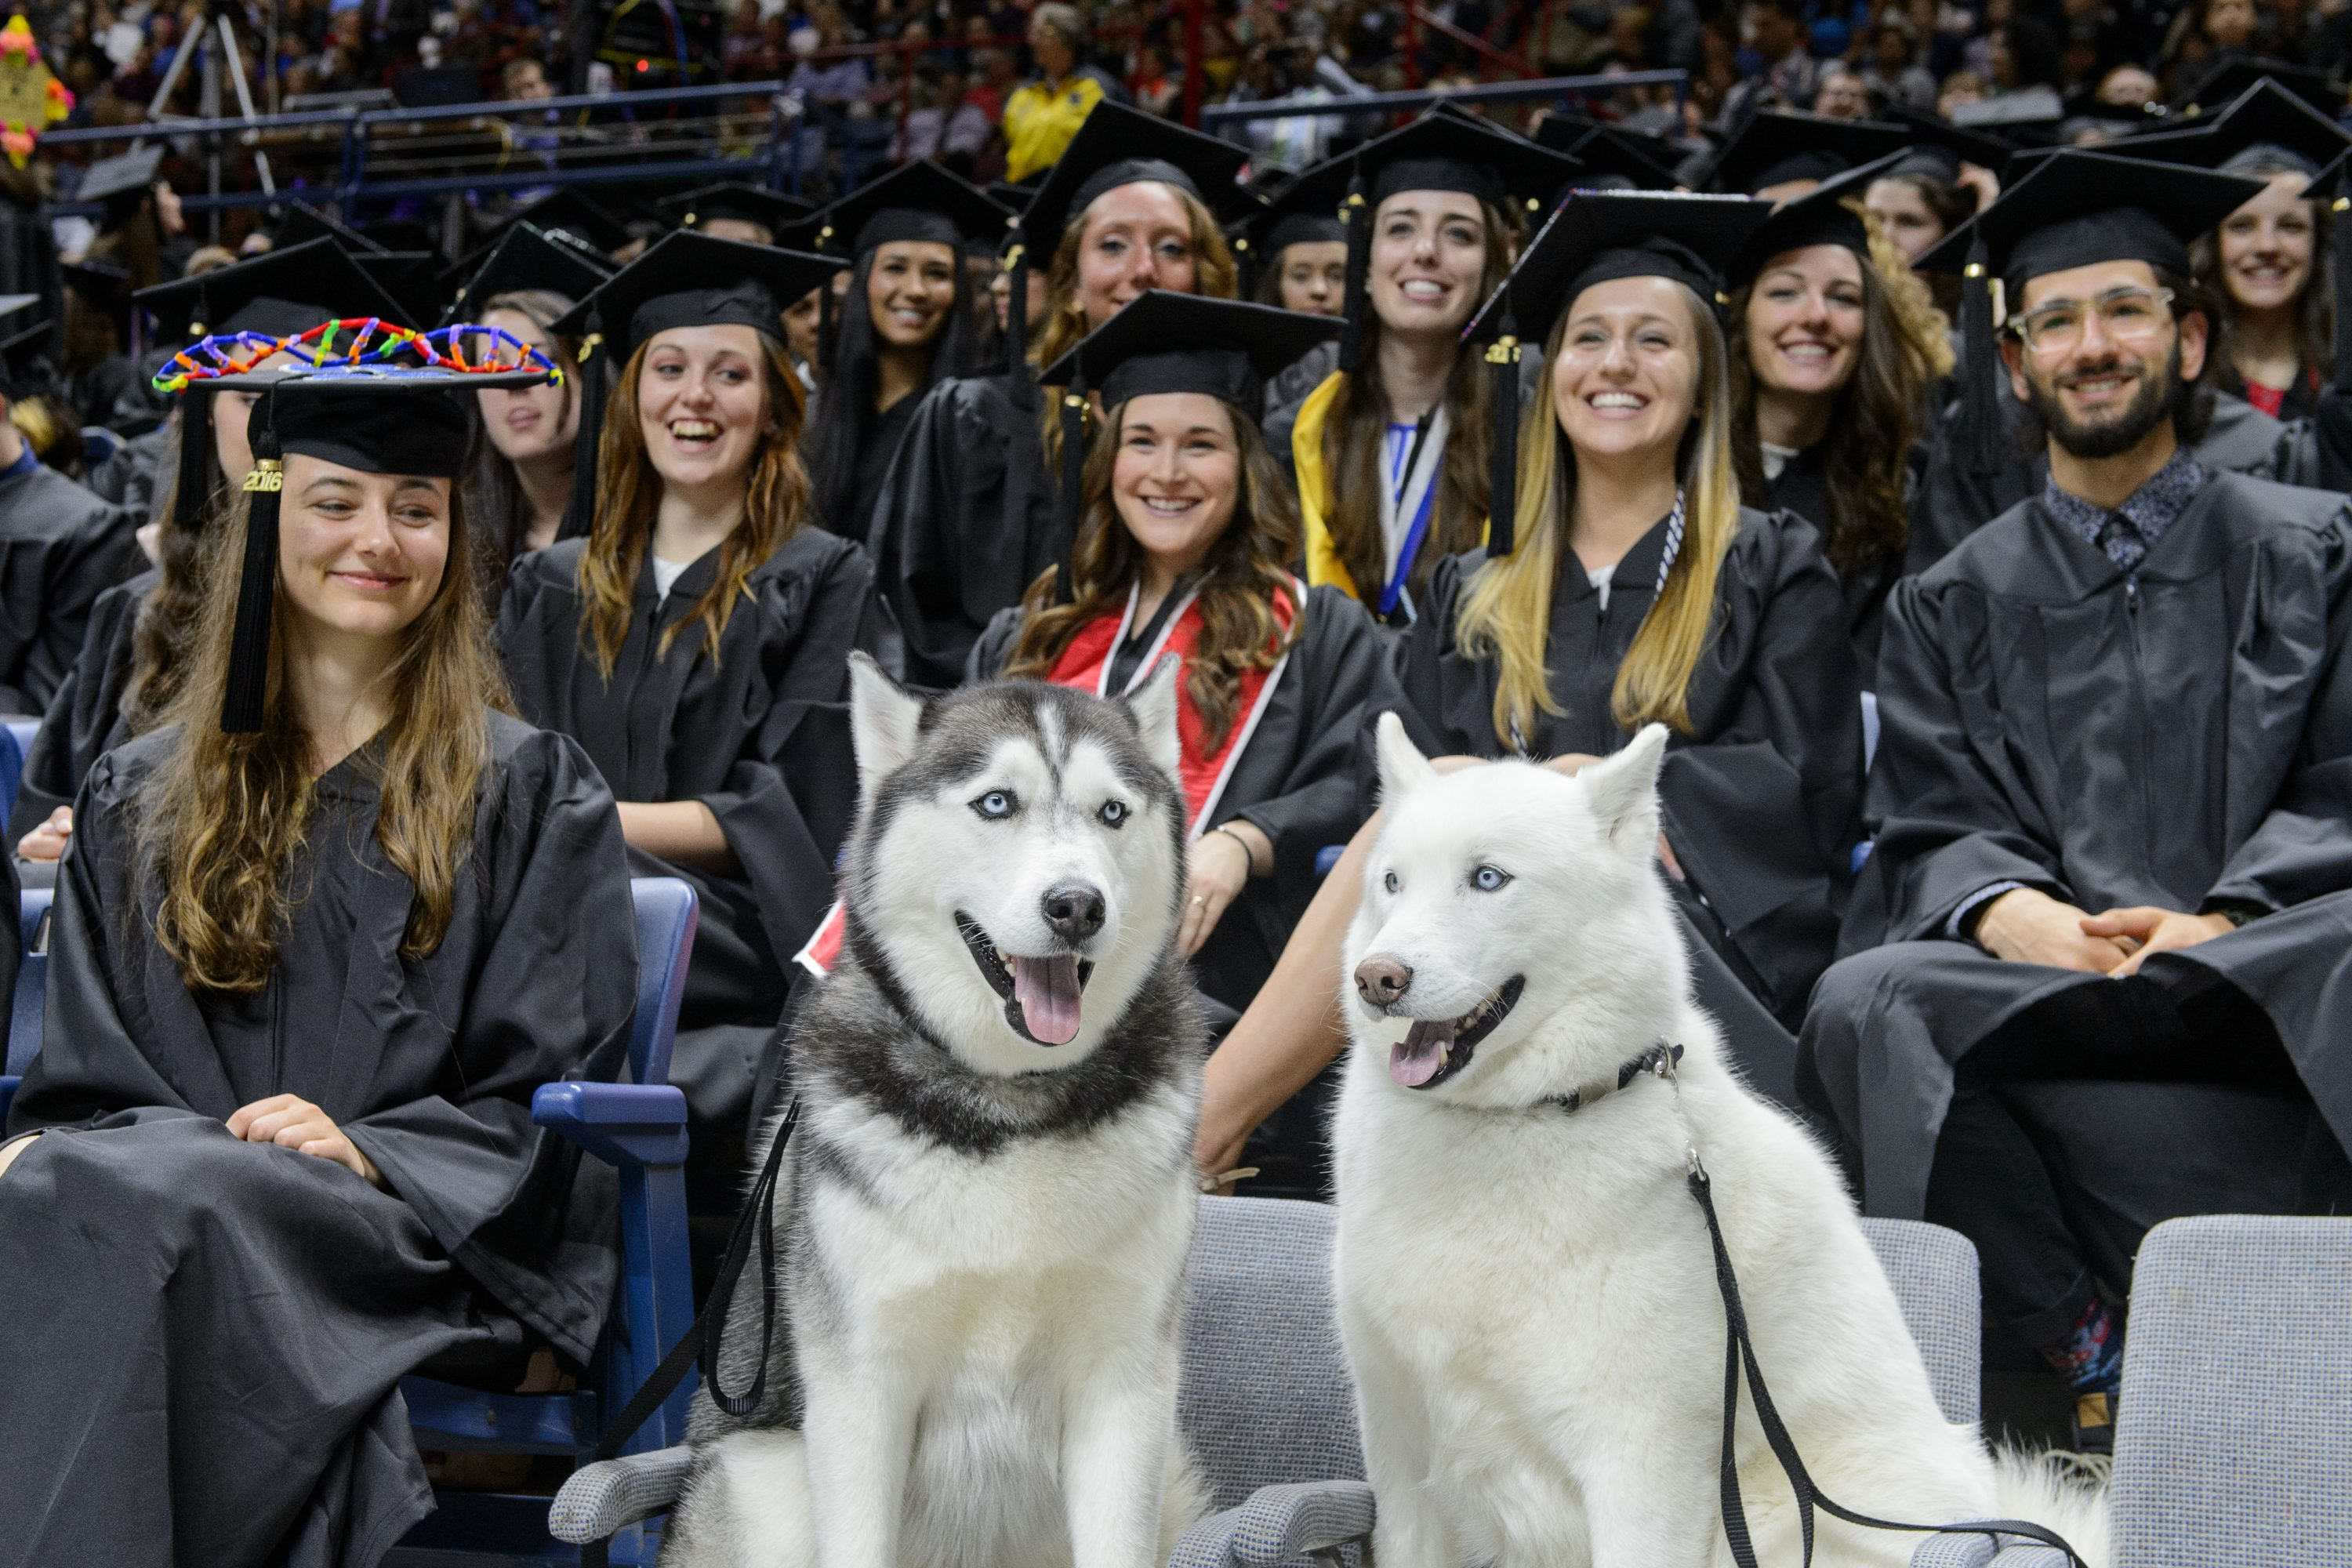 Jonathan XIV, left, and Jonathan XIII sit with students during the midday College of Liberal Arts and Sciences commencement ceremony at Gampel Pavilion on May 8, 2016. (Peter Morenus/UConn Photo)